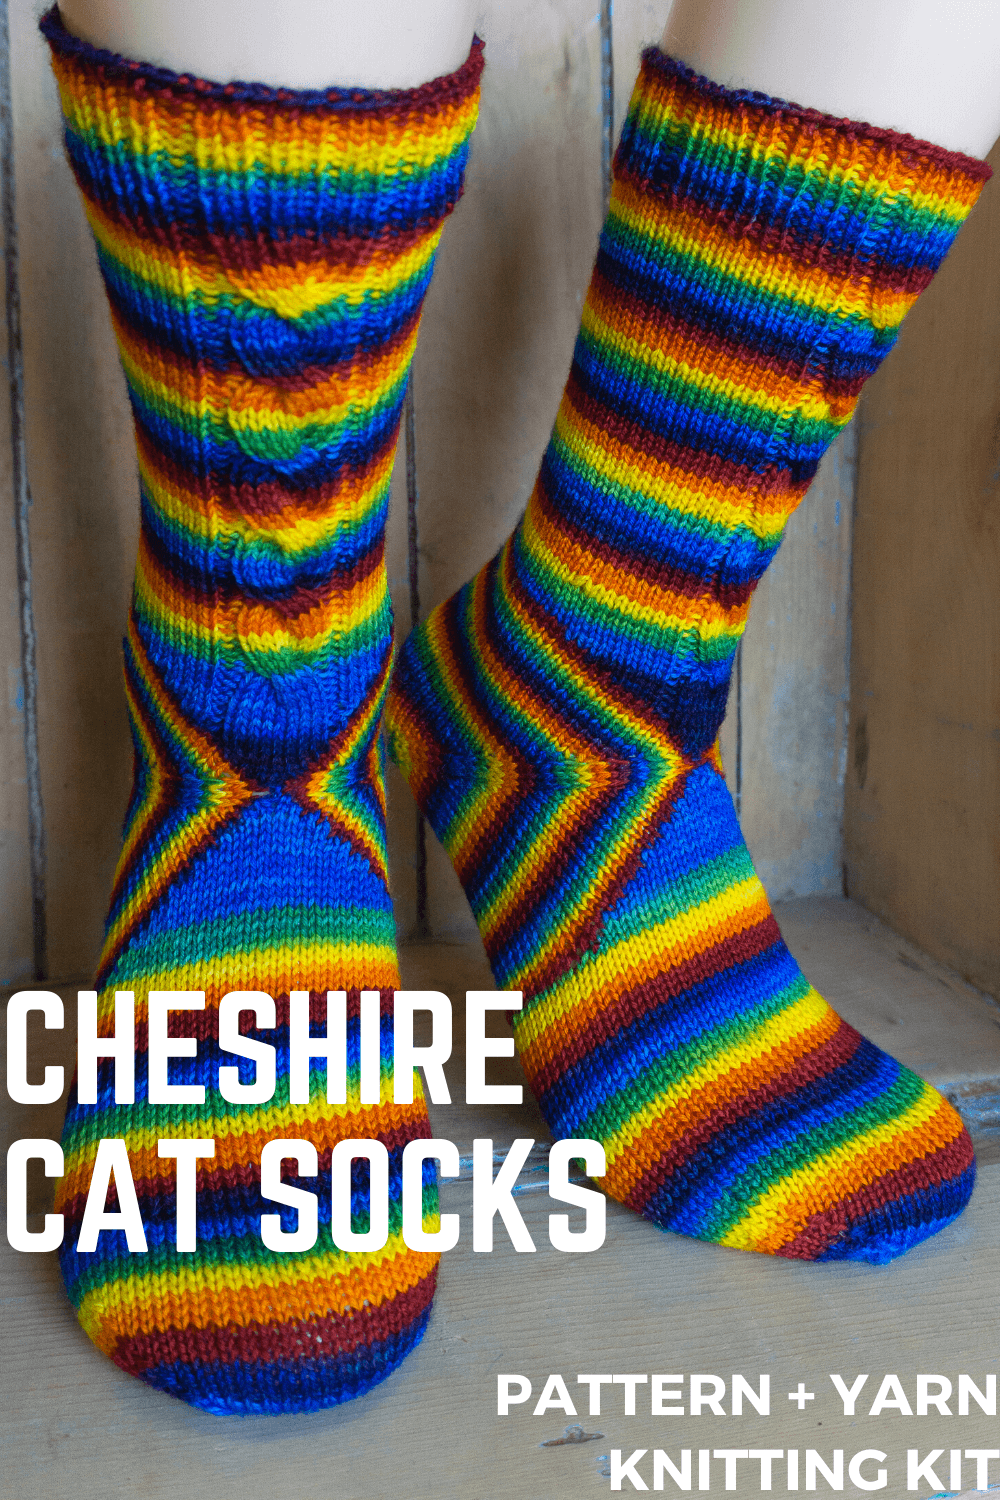 Cheshire Cat Socks | Knitting Kit